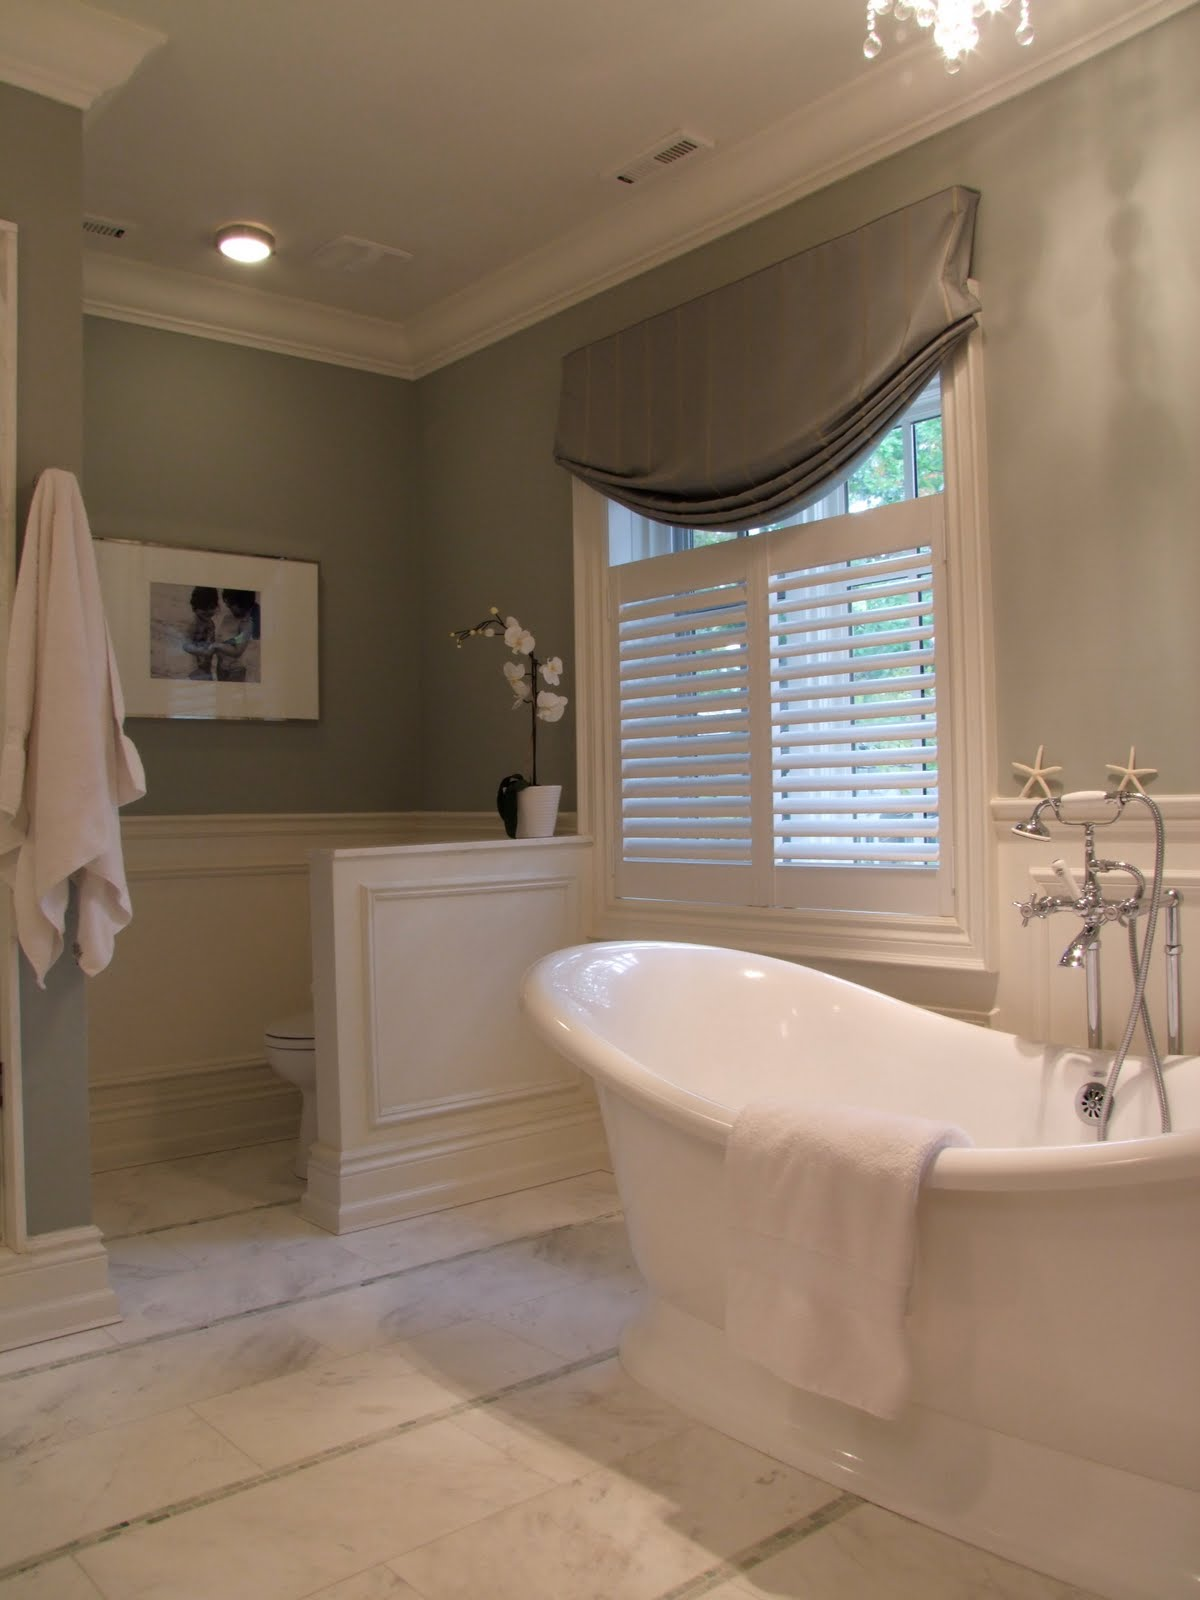 Creed archives family bathroom for Bathroom wall